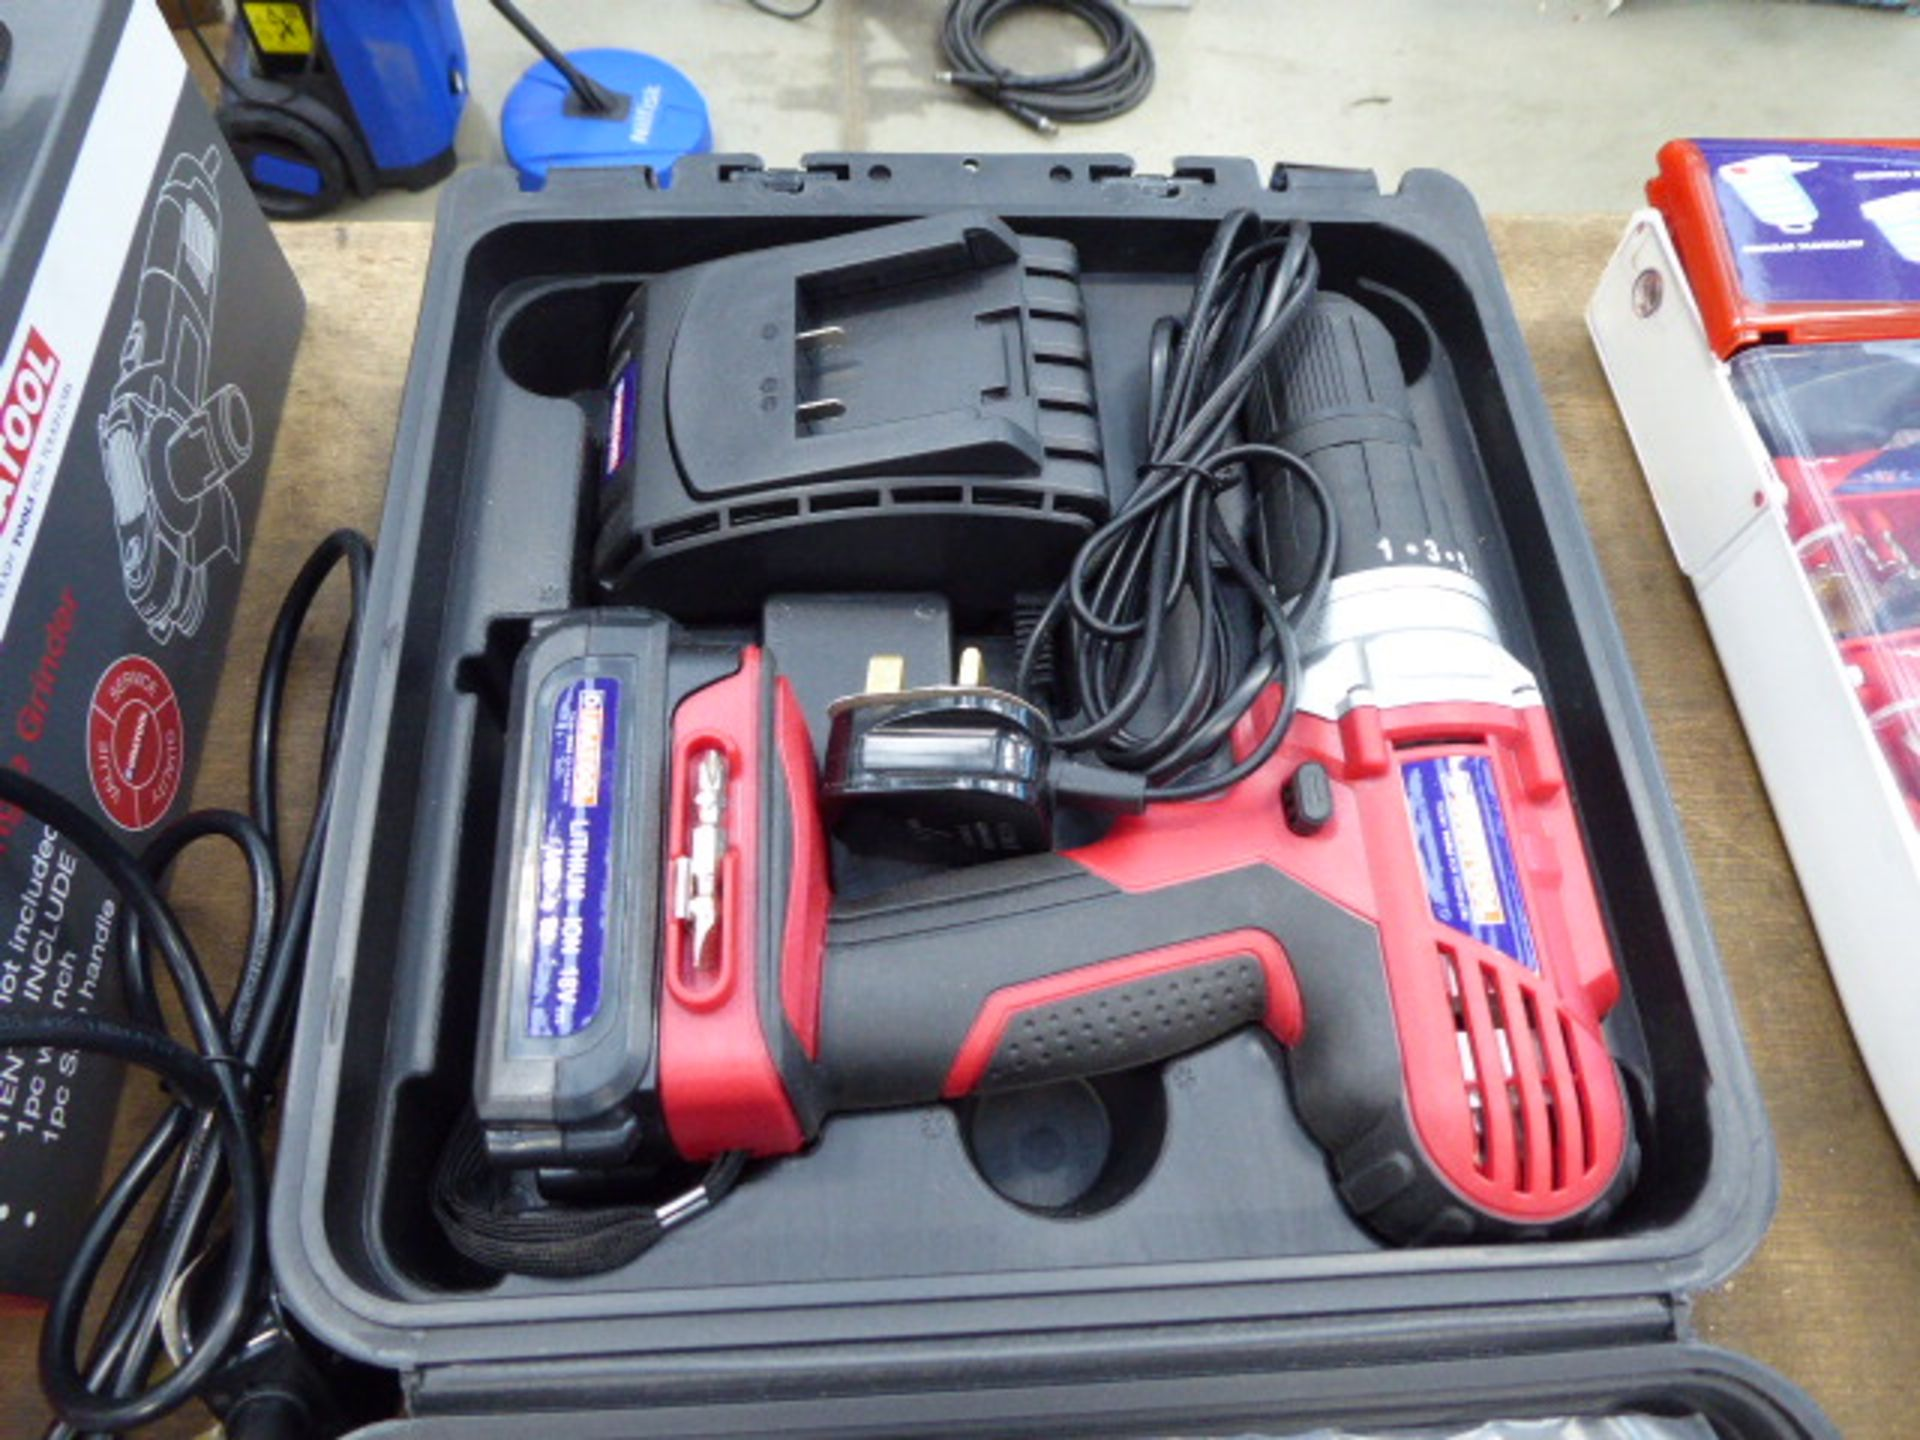 Duratool 18v cordless drill with 1 battery and charger